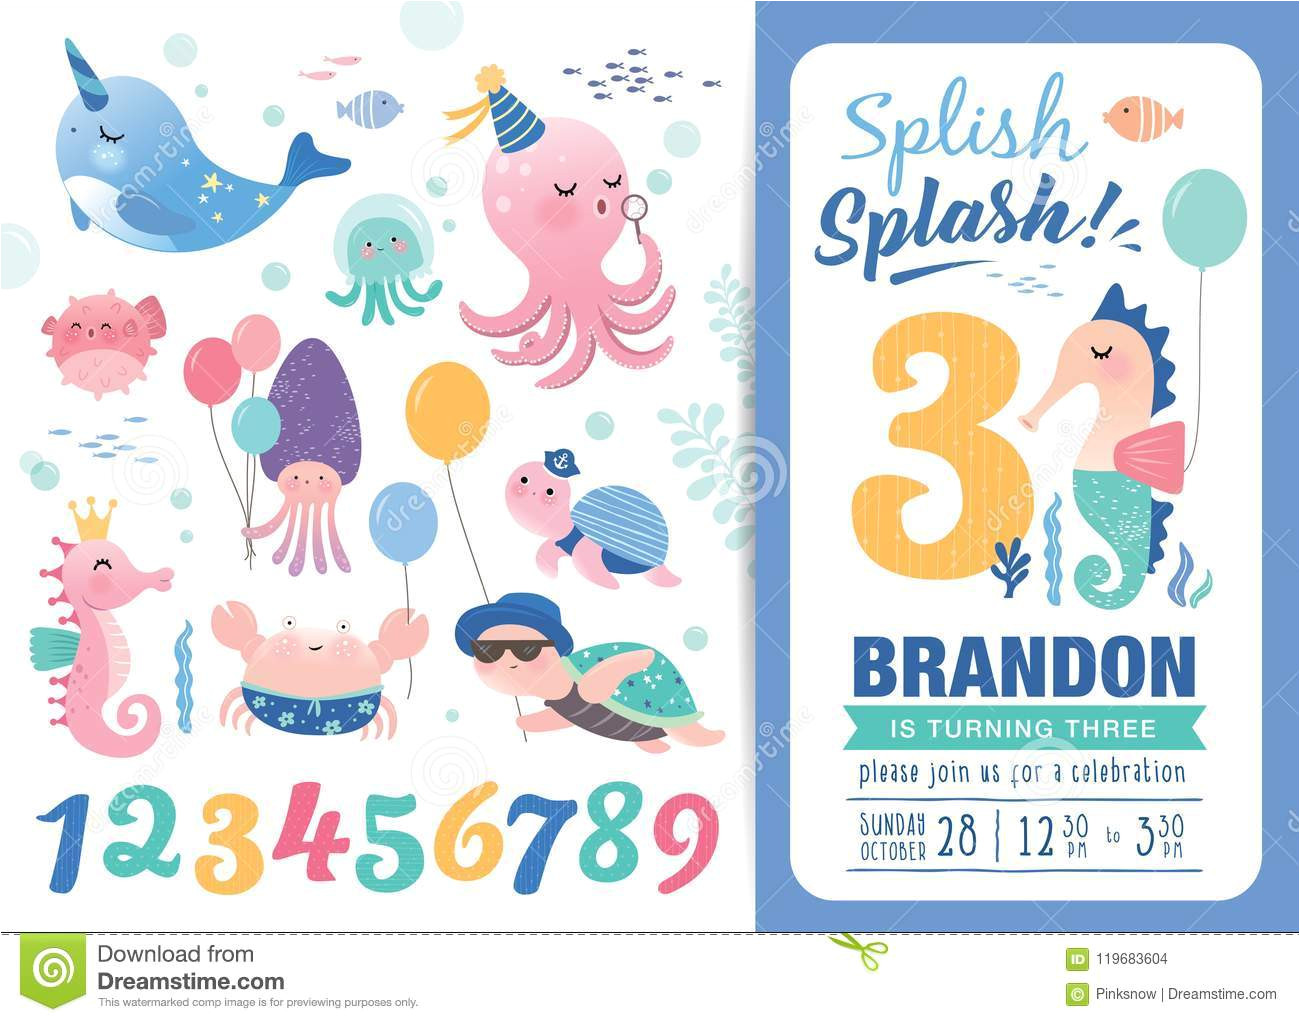 birthday party invitation card template cute marine life cartoon character birthday anniversary numbers birthday party 119683604 jpg